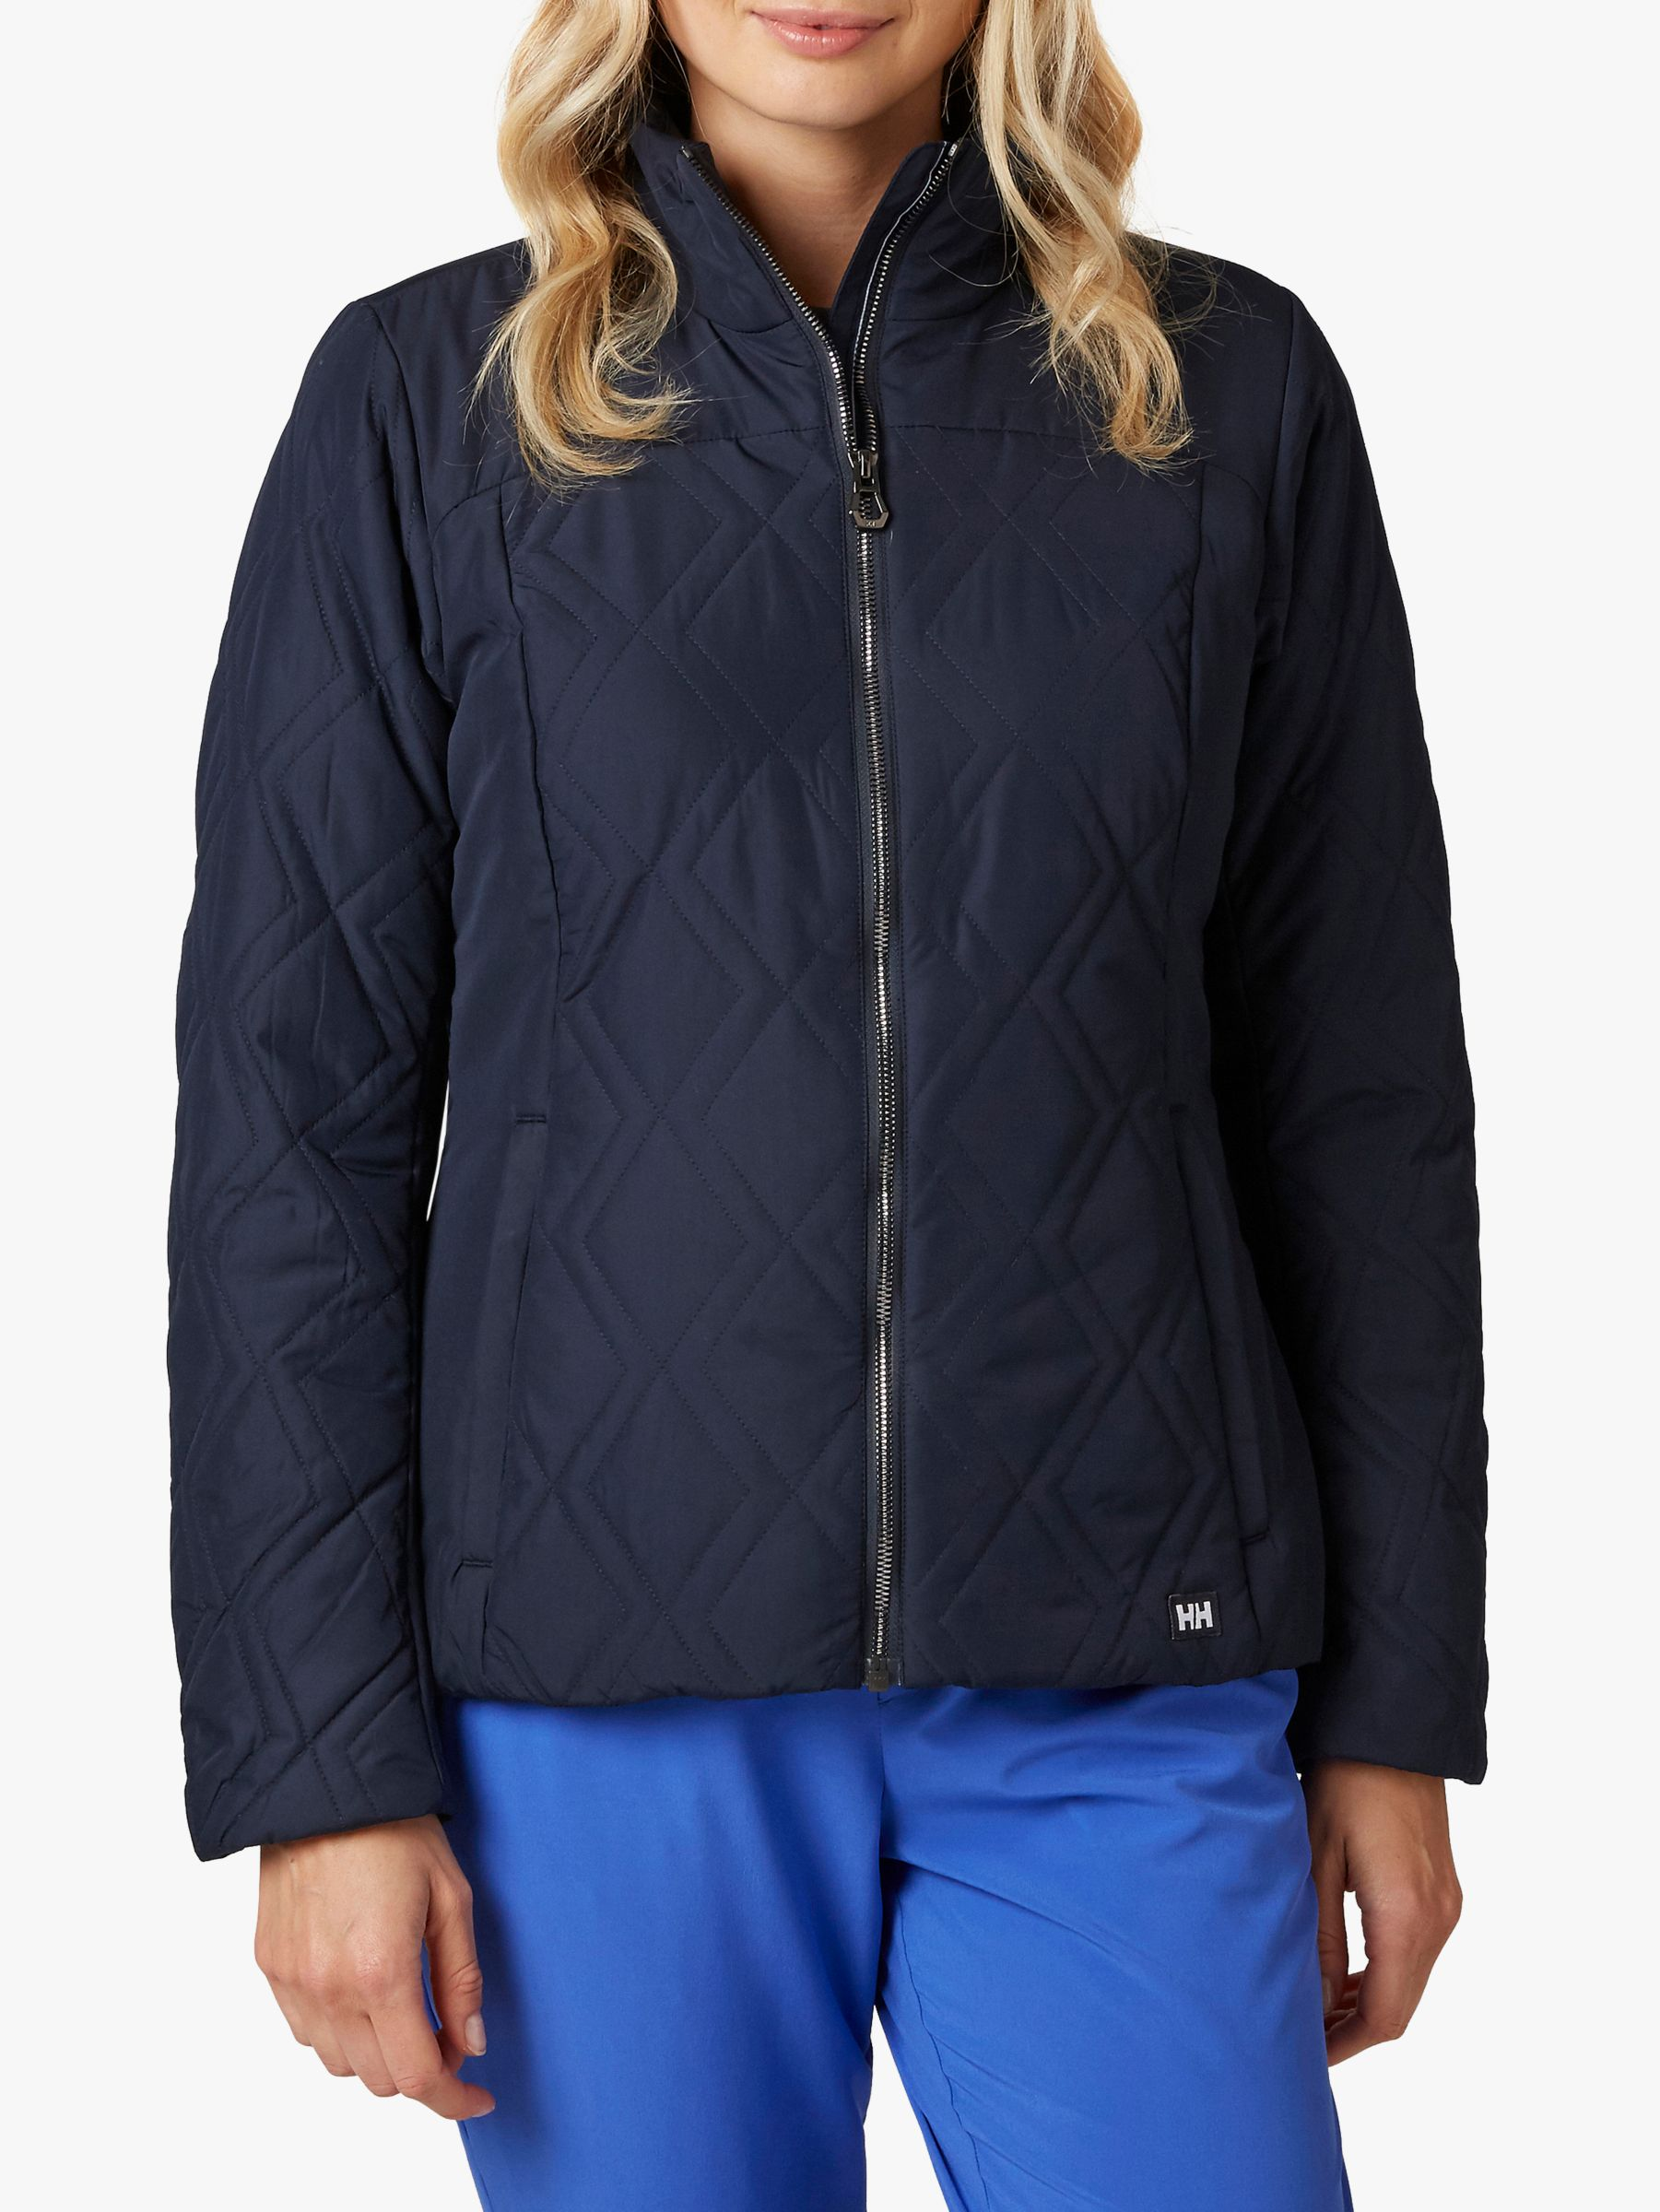 Helly Hansen Helly Hansen Crew Insulator Women's Water Repellent Jacket, Navy